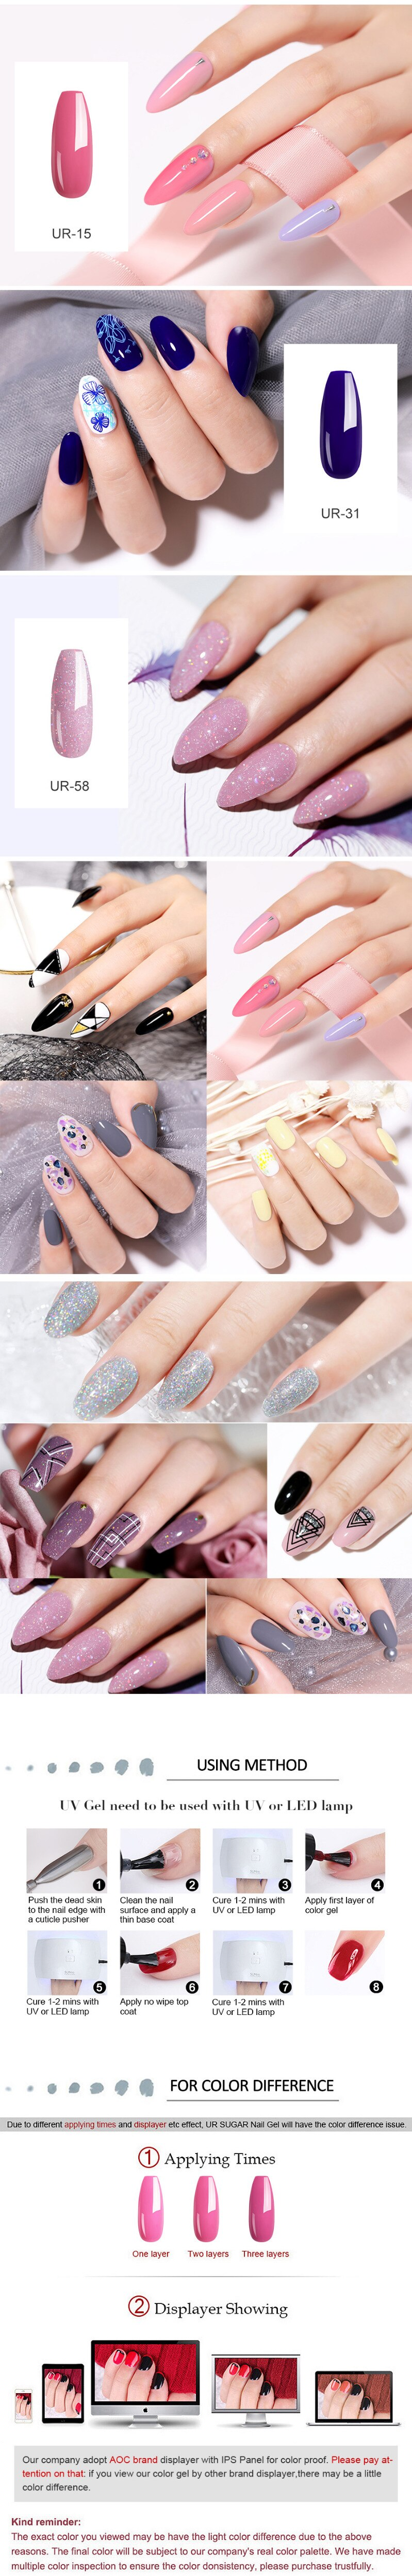 UR SUGAR Glitter UV Gel Nail Polish Set Nude Color Series Led Nail Gel Varnish Semi Permanent Nail Lacquer Sequins Gel 2pcs/set